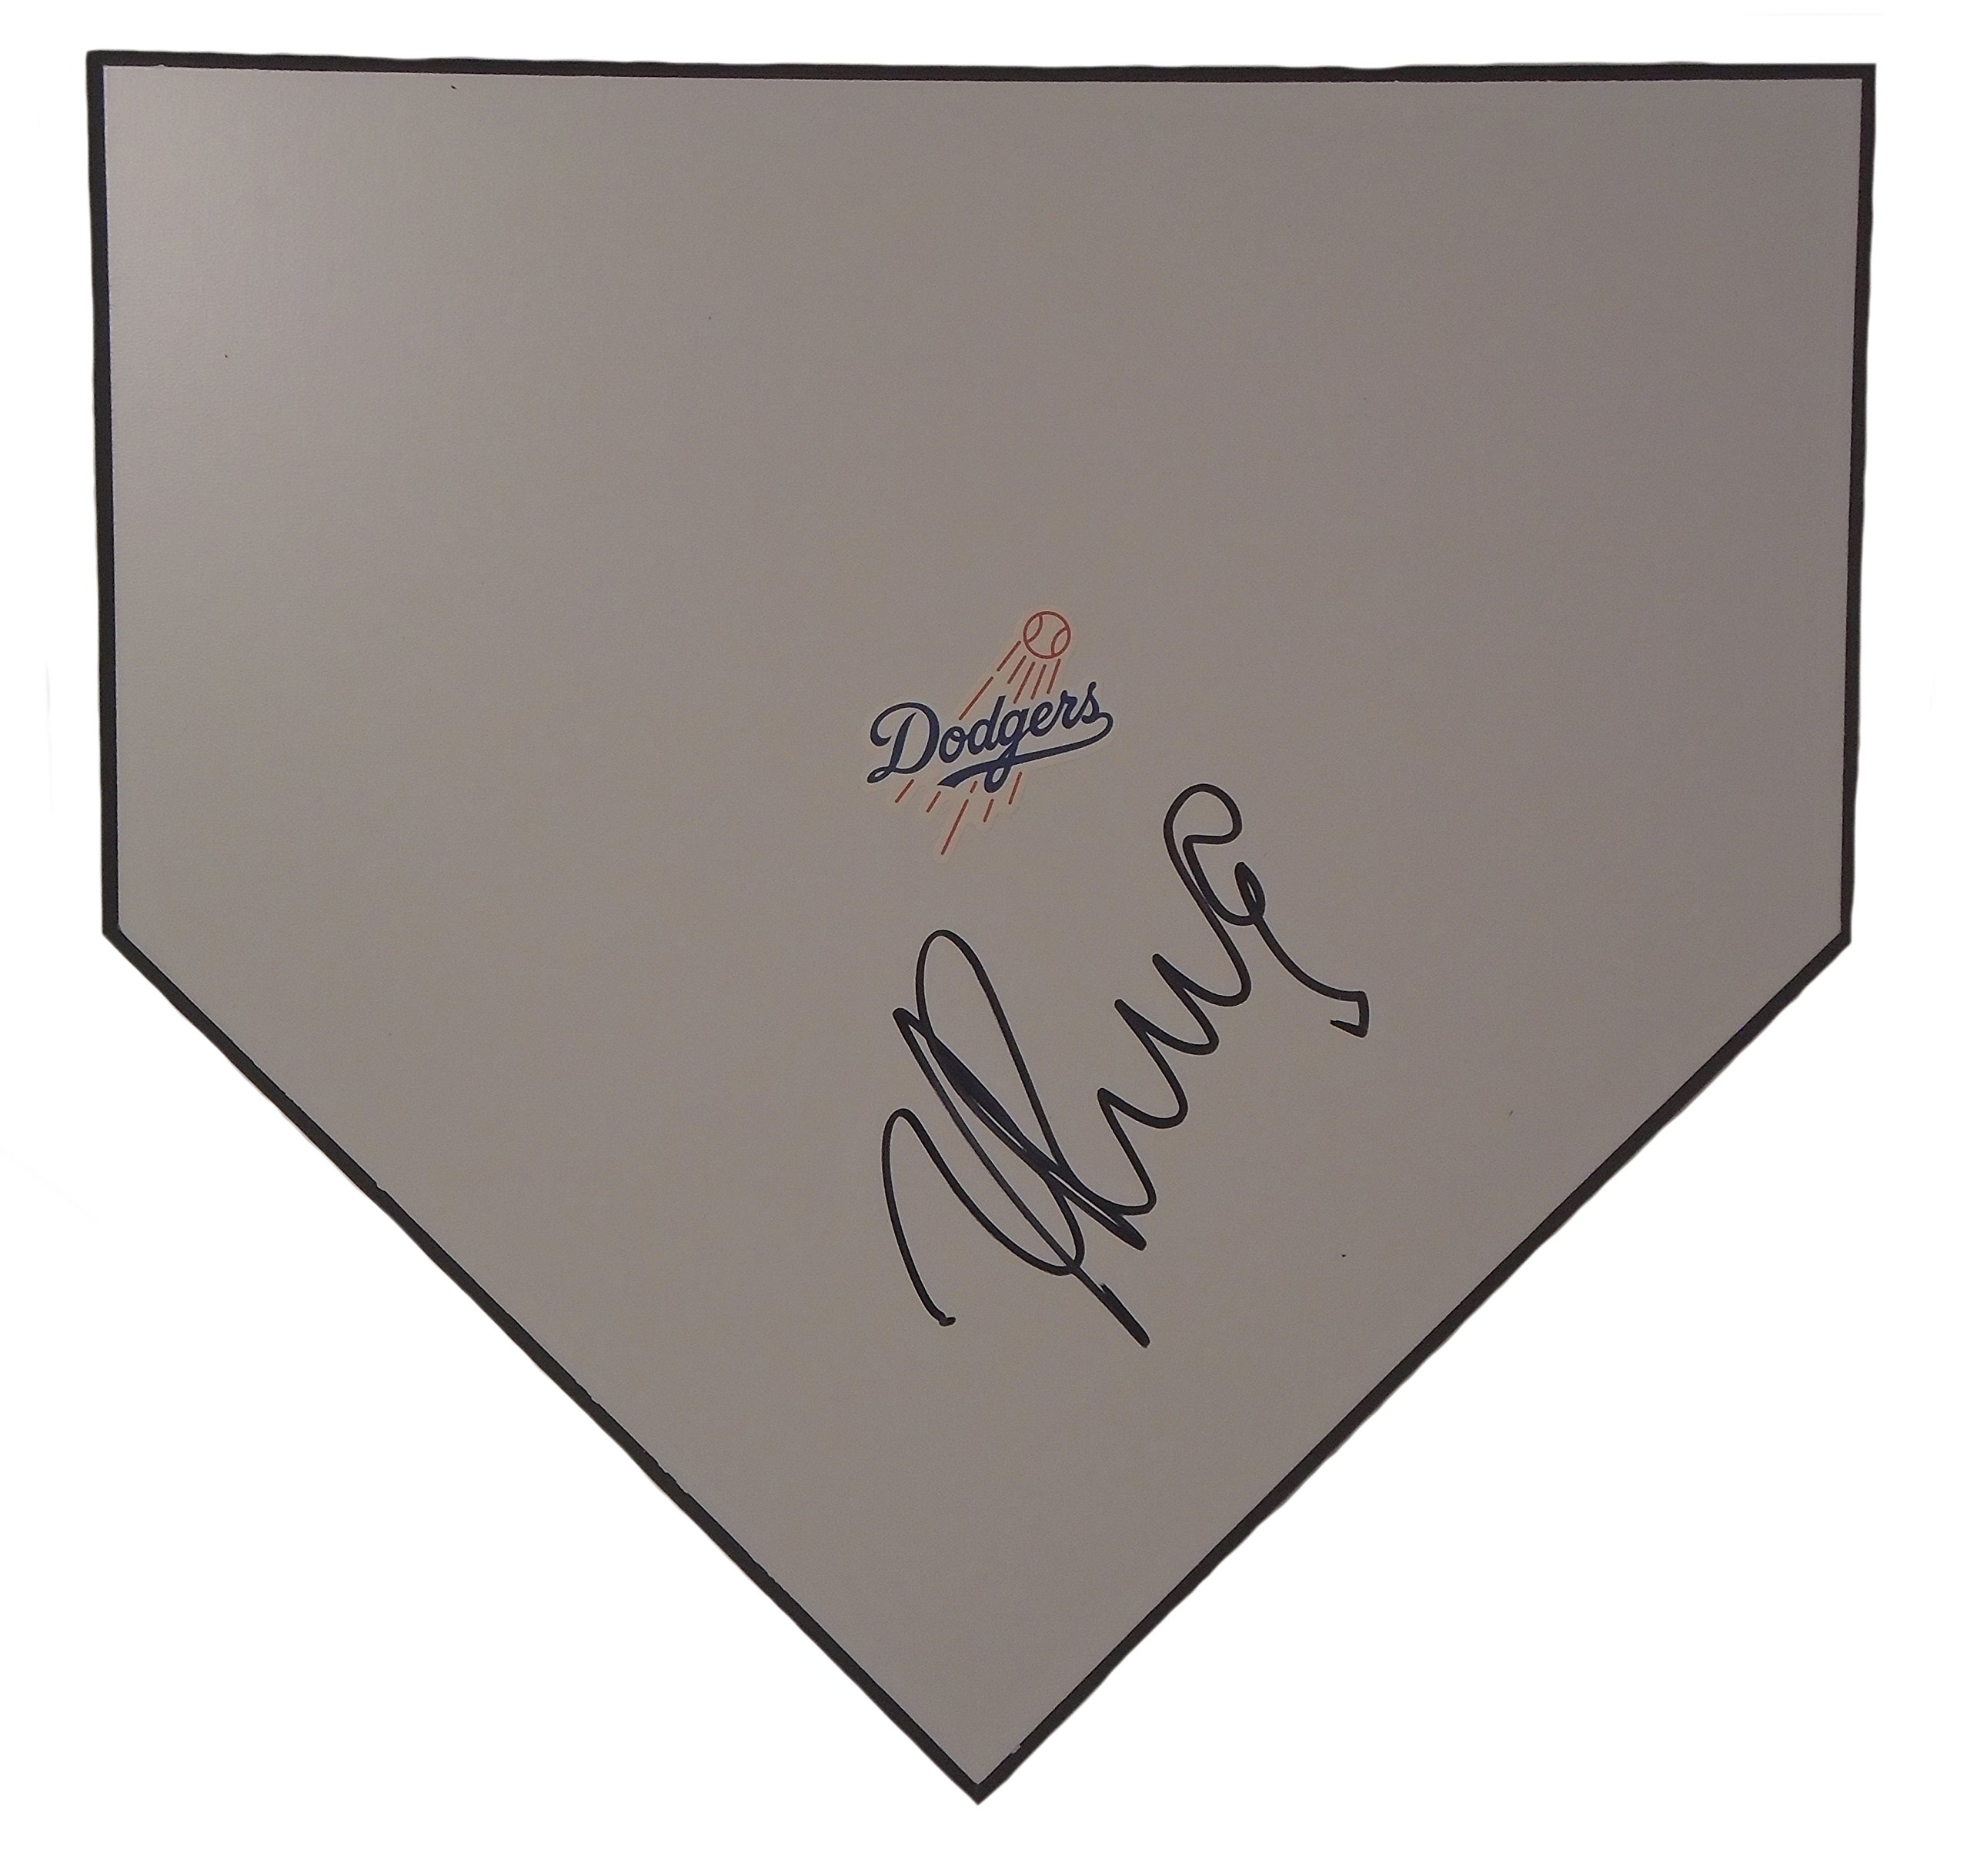 L.A. Dodgers Yasiel Puig Autographed Hand Signed Los Angeles Dodgers Baseball Home Plate Base with Proof Photo of Signing and COA